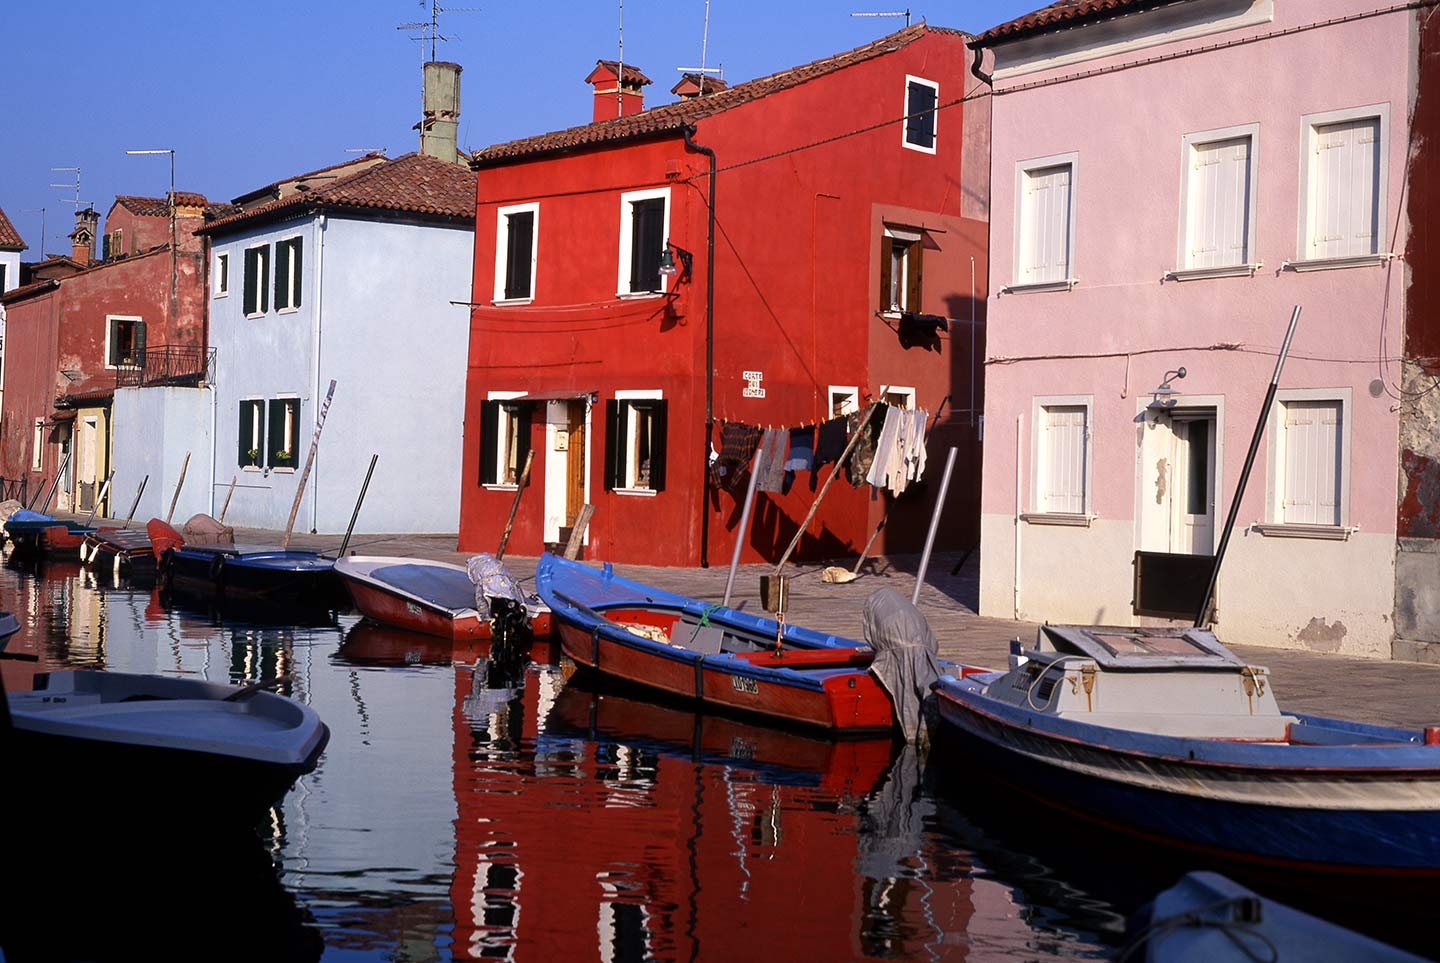 Image of a ypical Burano canal scene